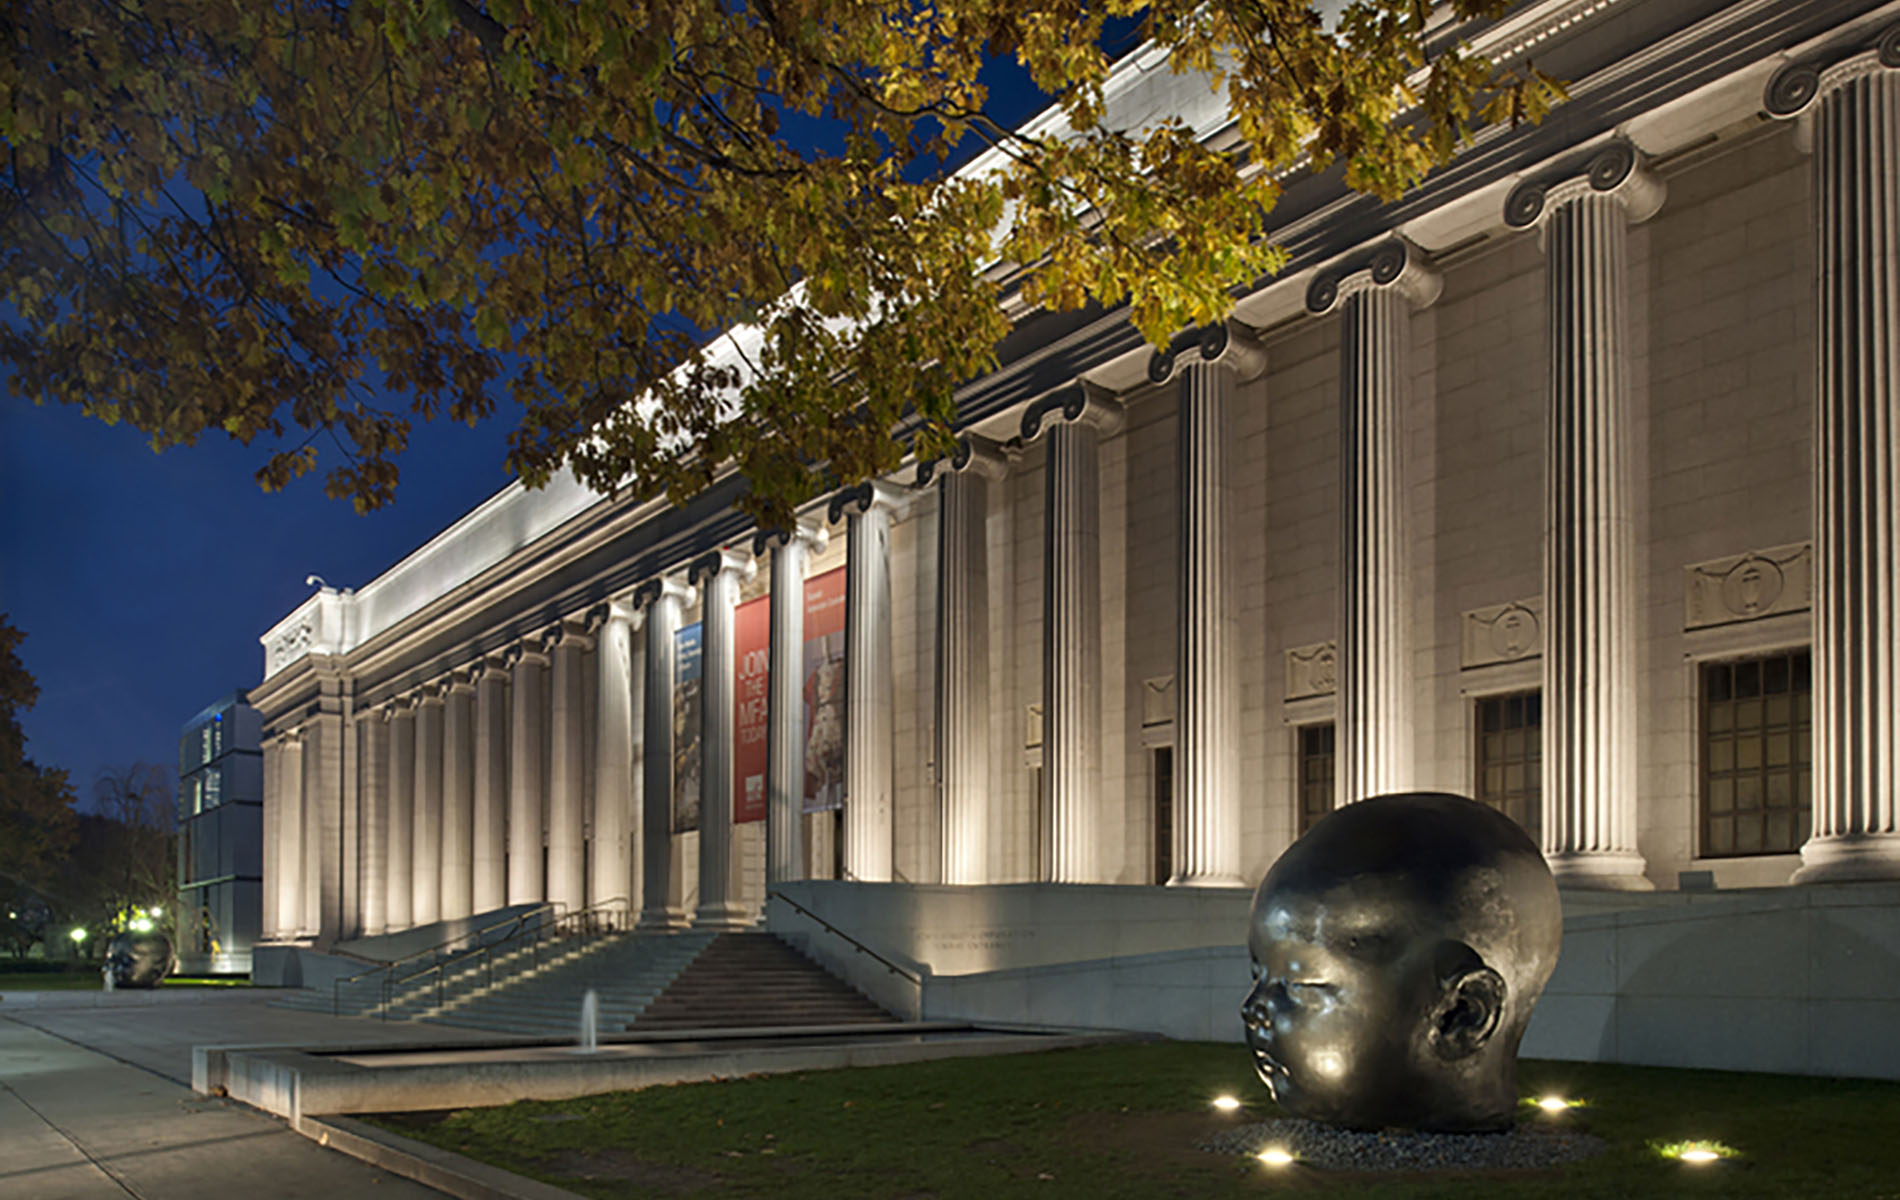 Museum with white columns at night with tree and gaint black state of a head